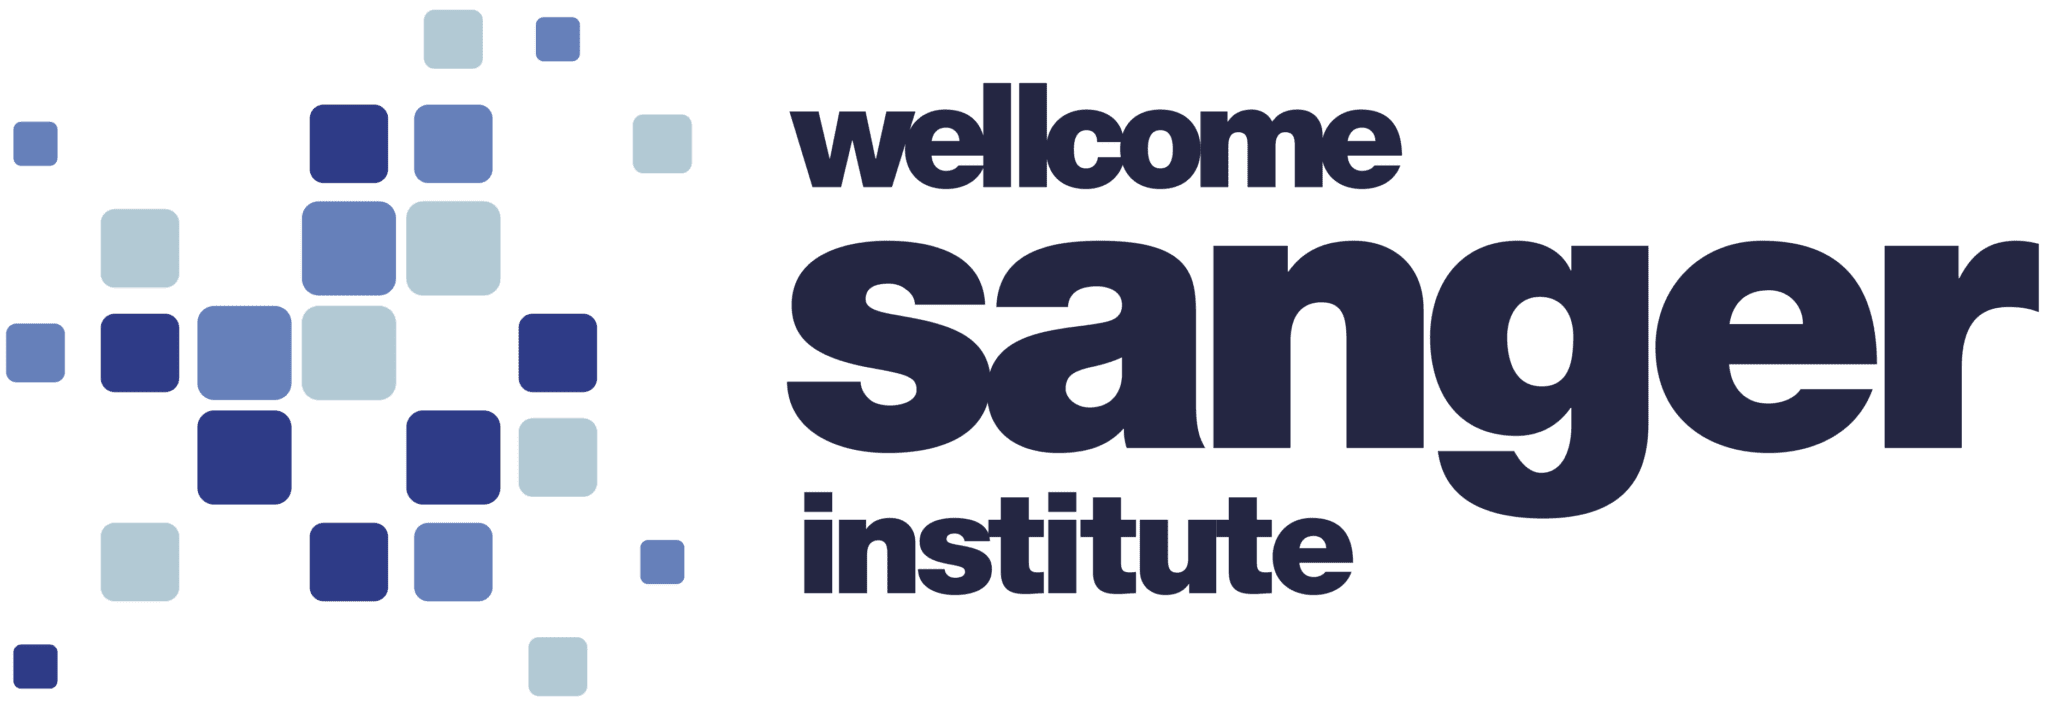 wellcome sanger institute logo1